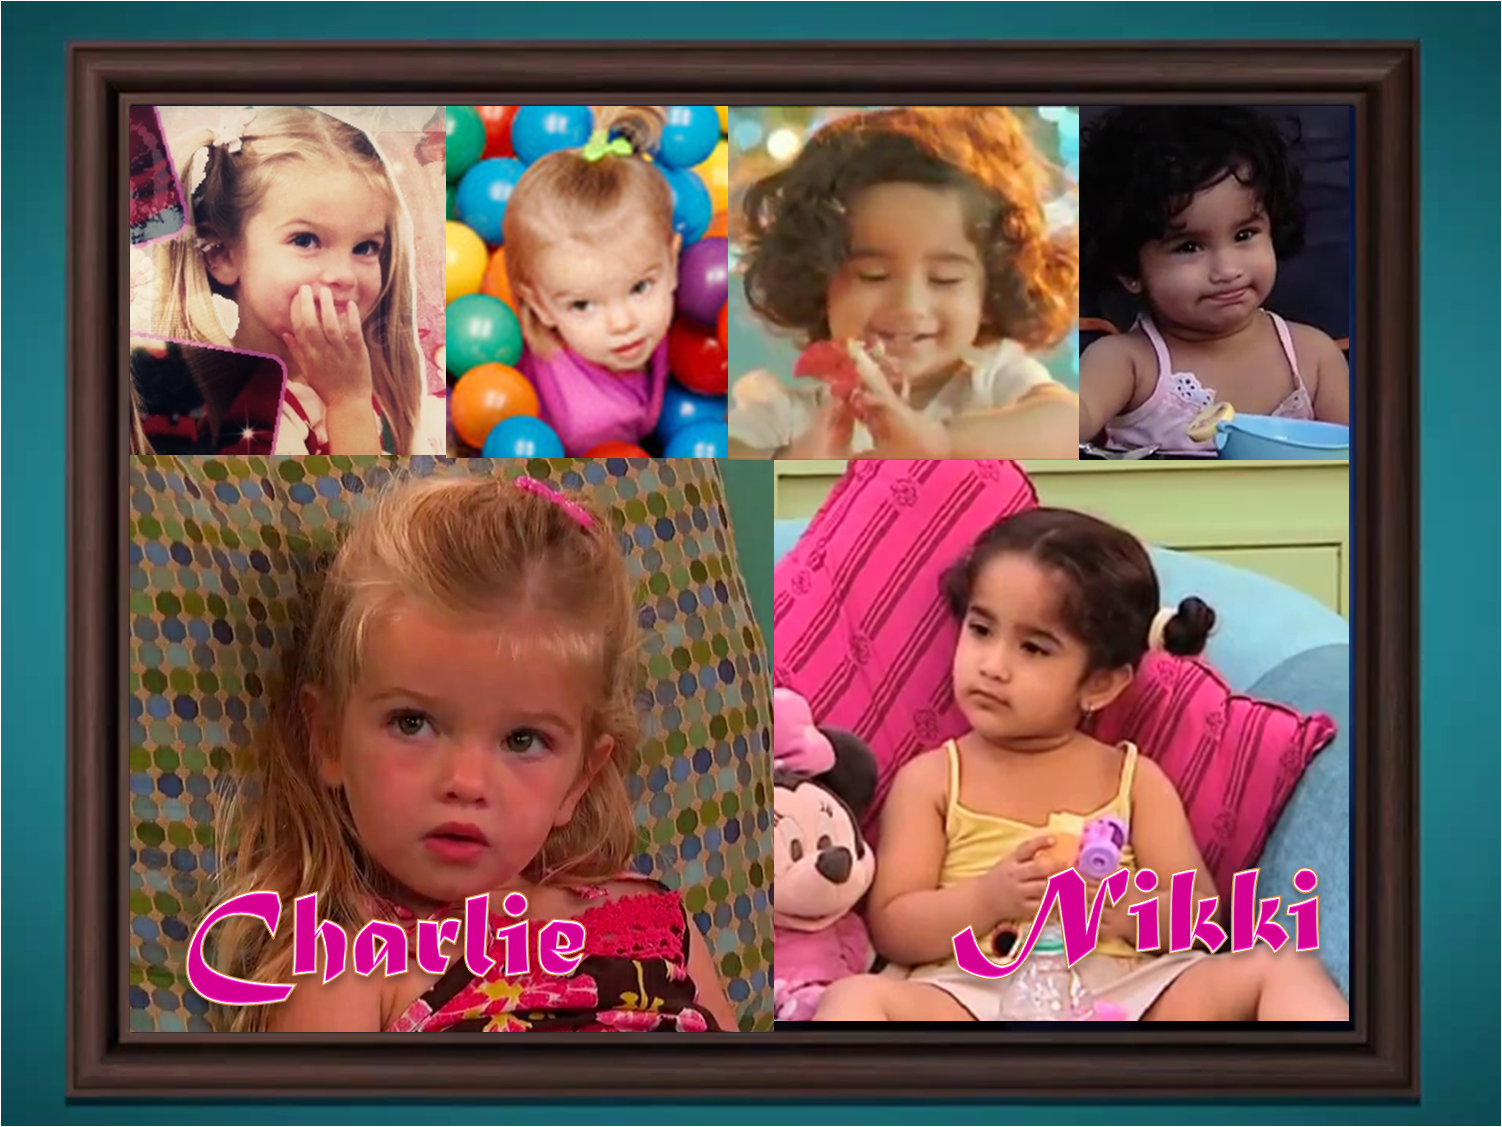 cute শিশুরা from good luck charlie and best of luck nikki